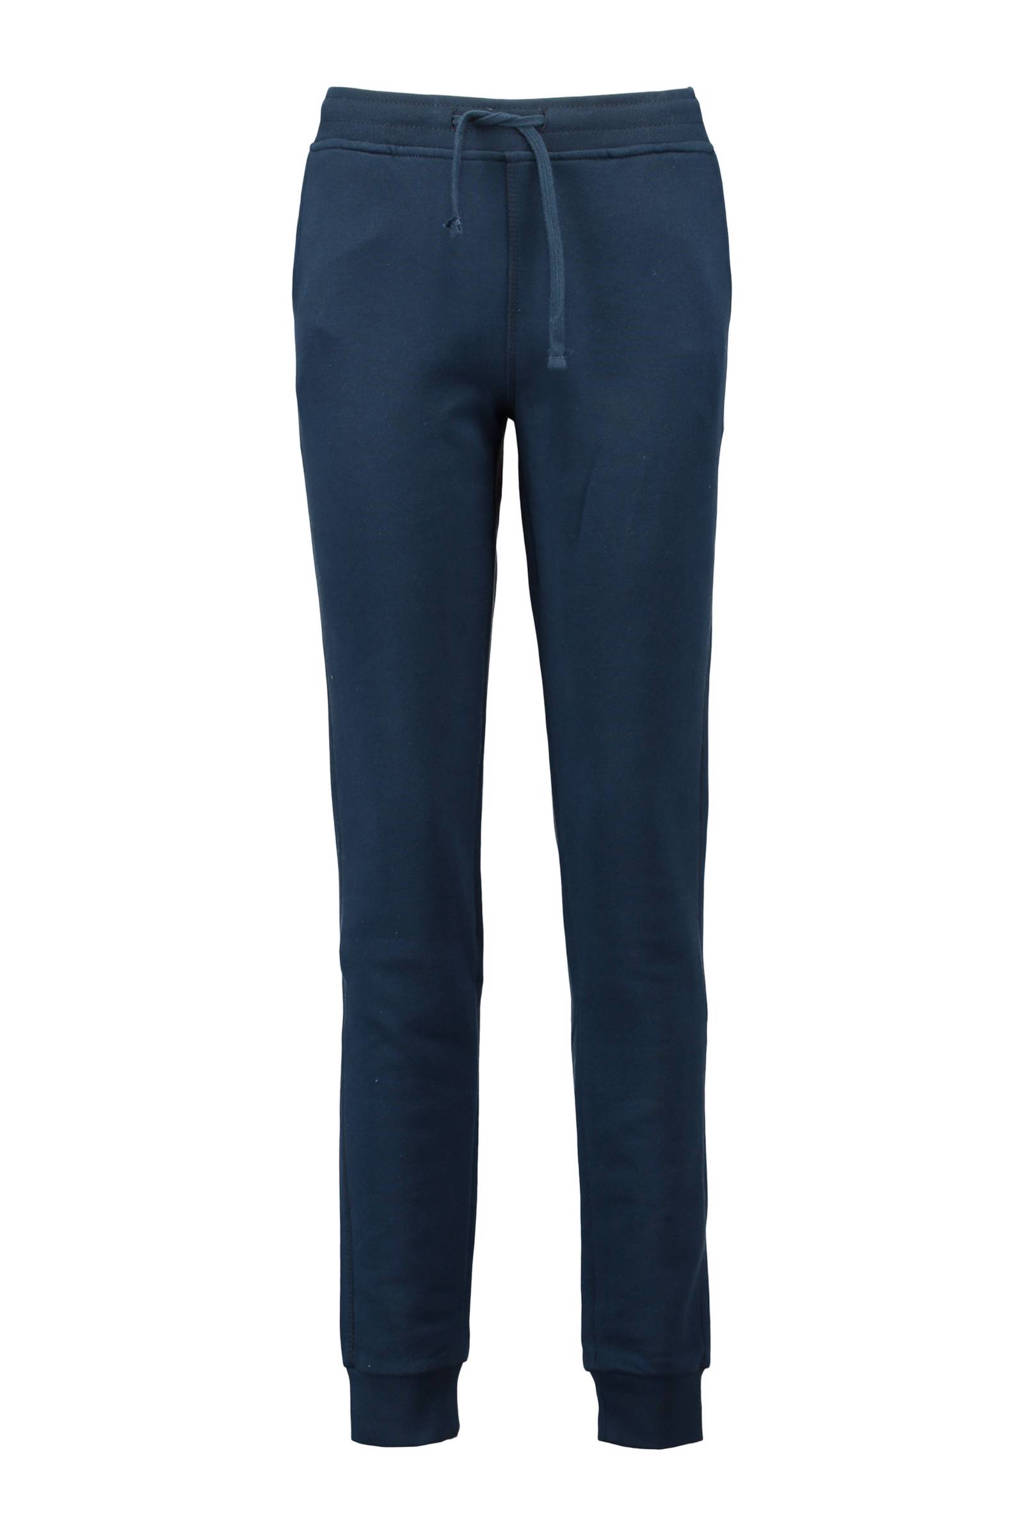 America Today Car sweatpants, Donkerblauw